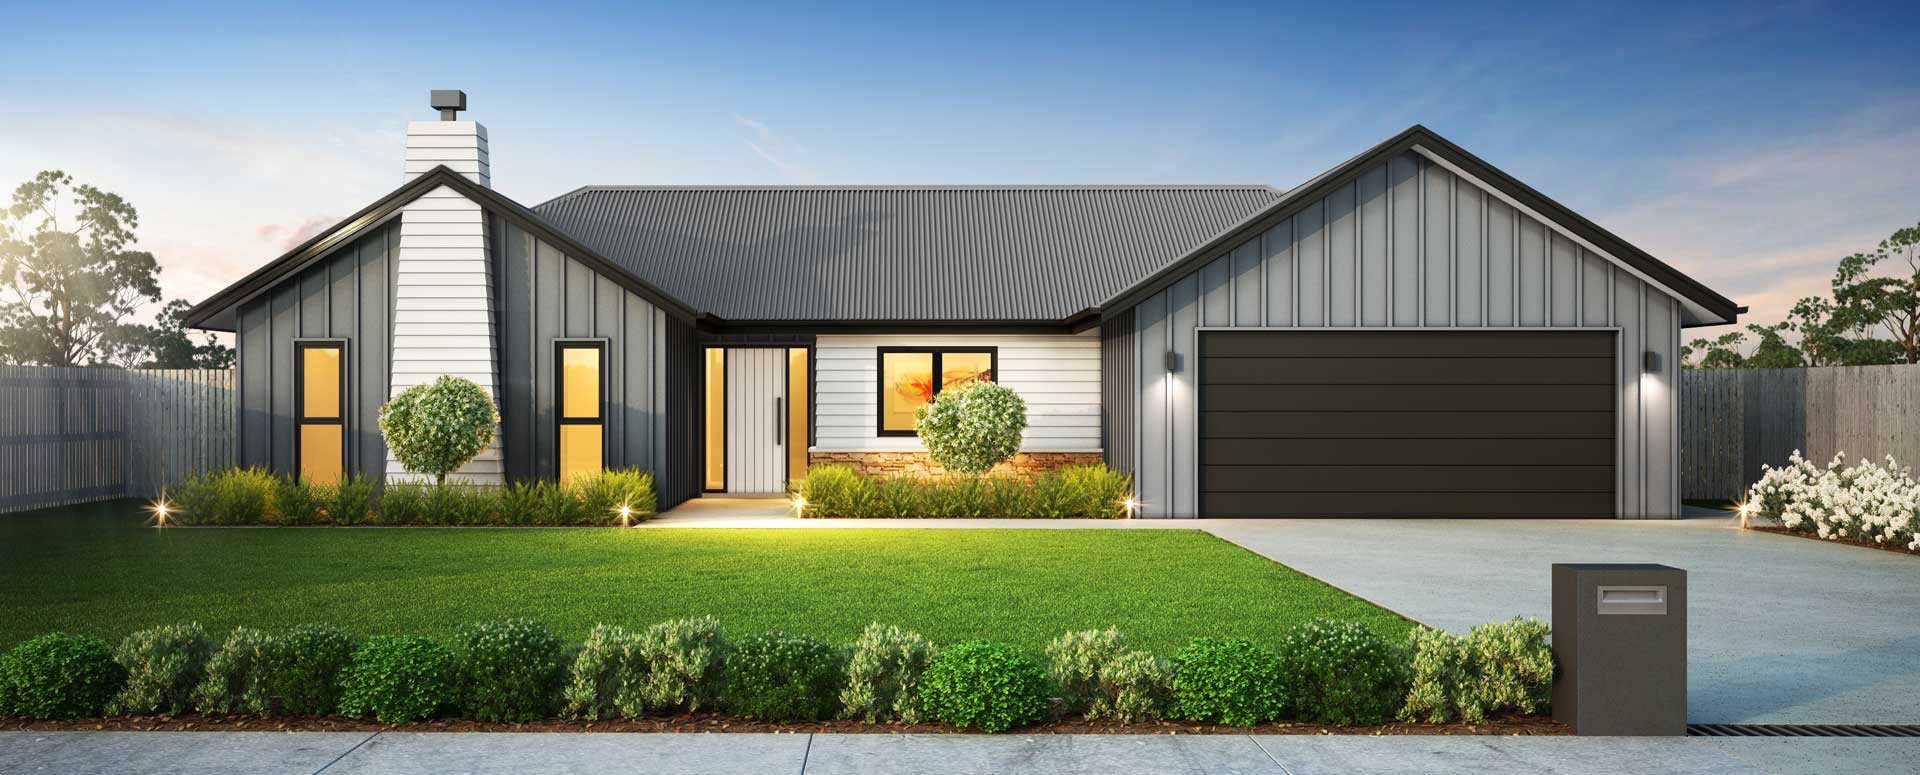 Alexia Penny Homes Banner Image